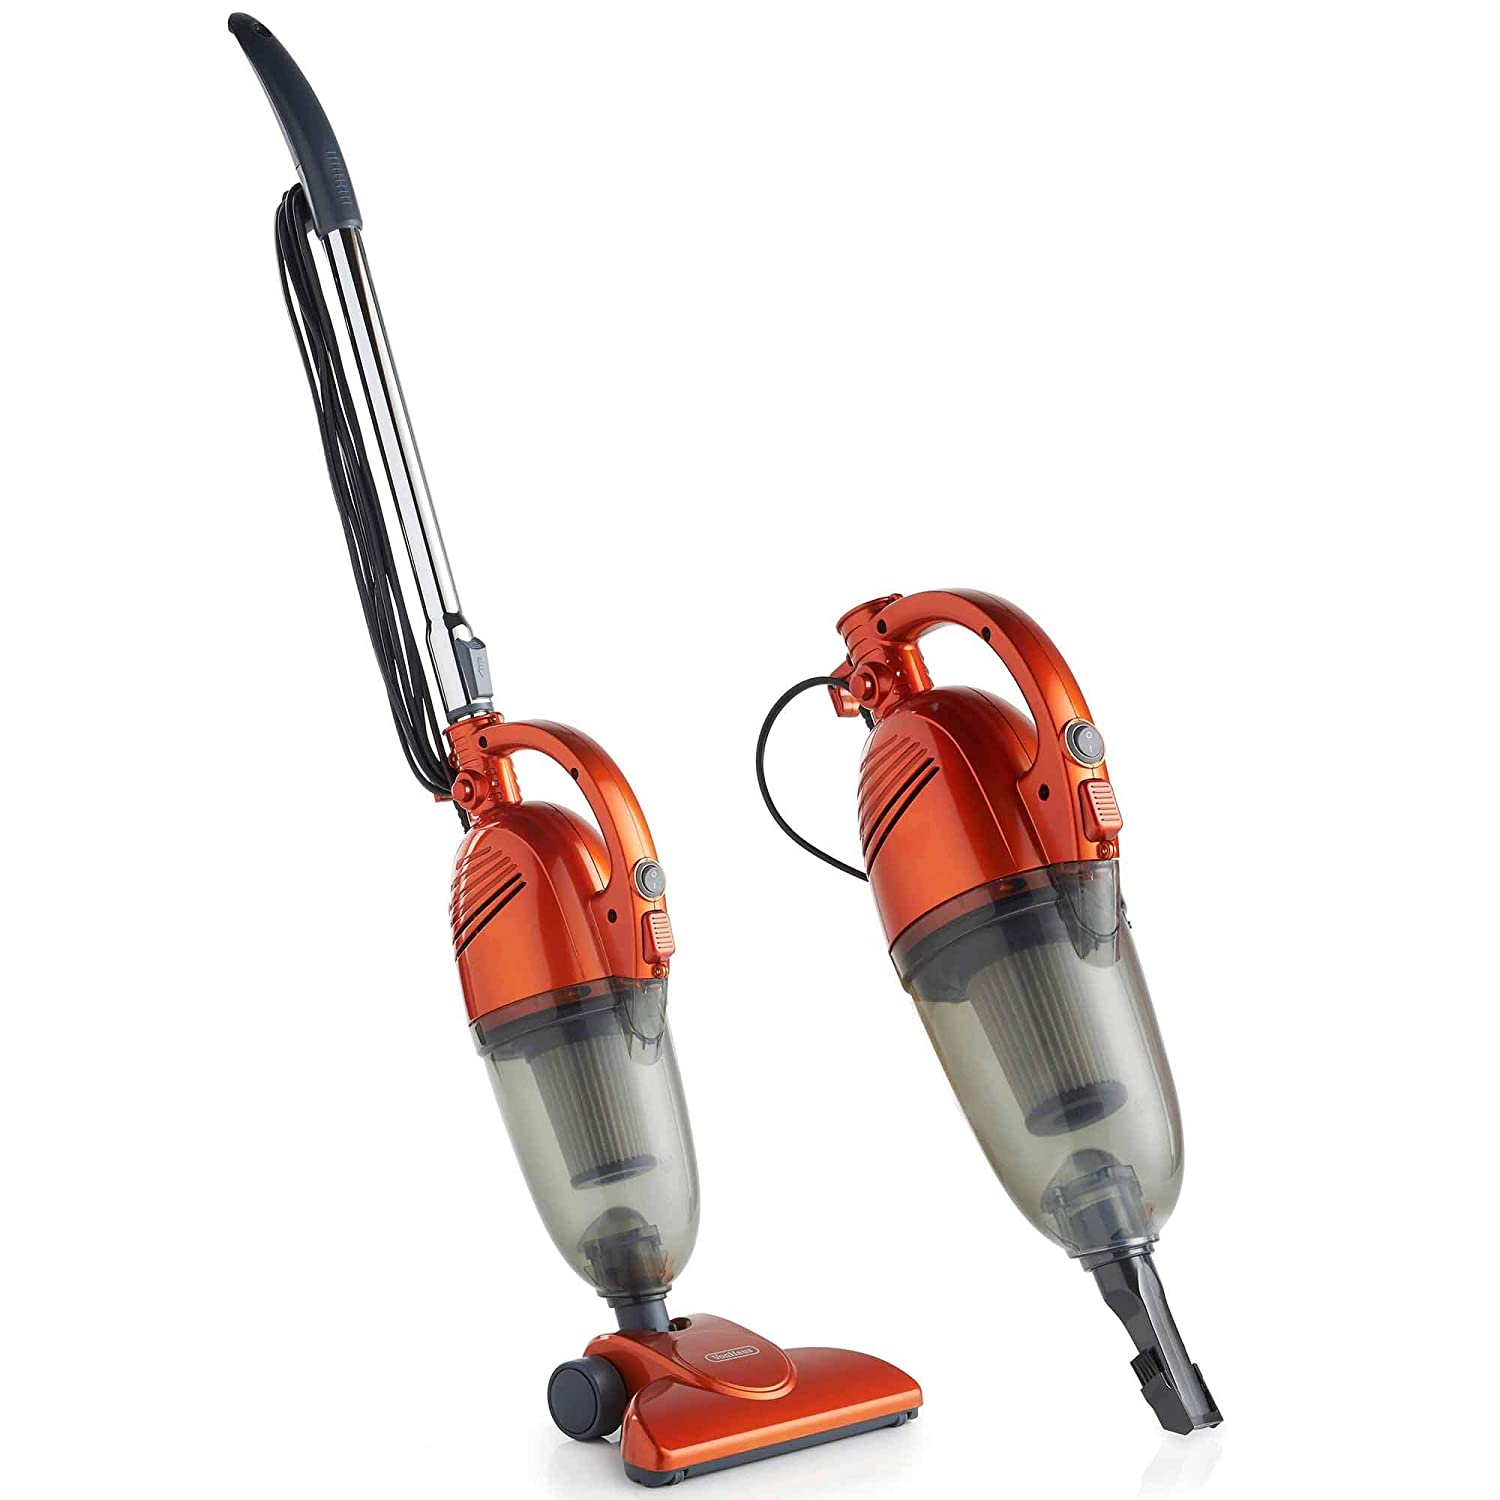 VonHaus Stick Vacuum Cleaner 600W Corded – 2 in 1 Upright & Handheld Vac with Lightweight Design